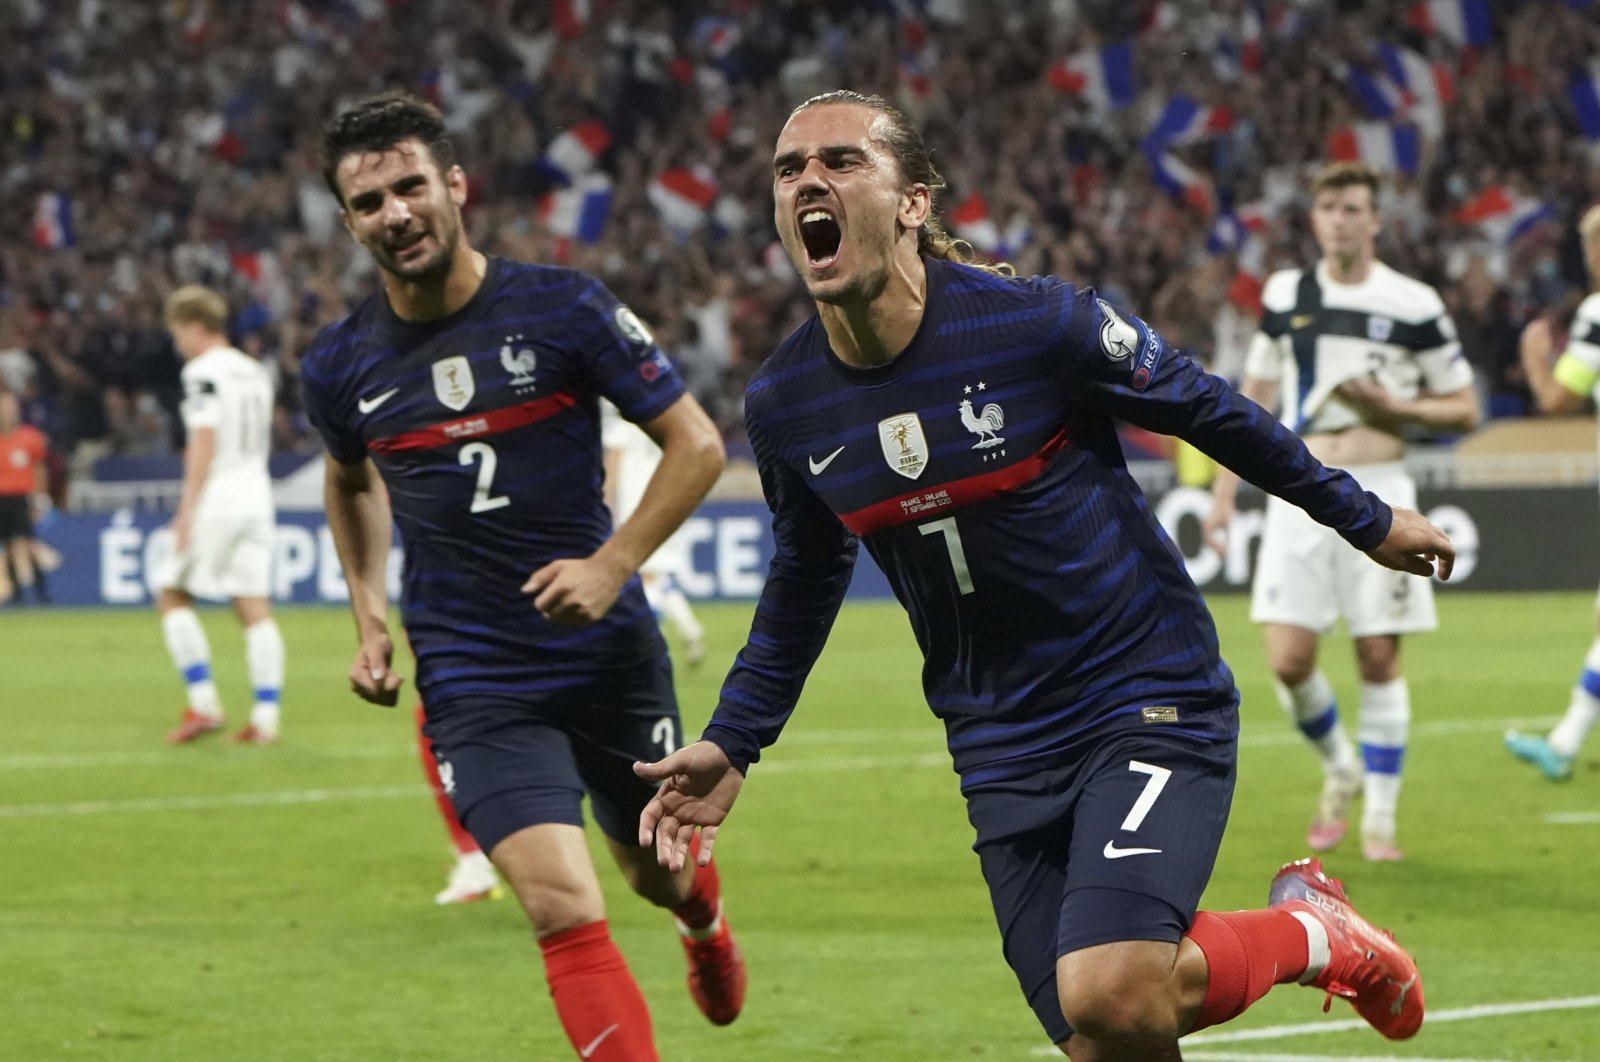 France's Antoine Griezmann celebrates after scoring against Finland in a World Cup 2022 Group D qualifier in Lyon, France, Sept. 7, 2021. (AP Photo)